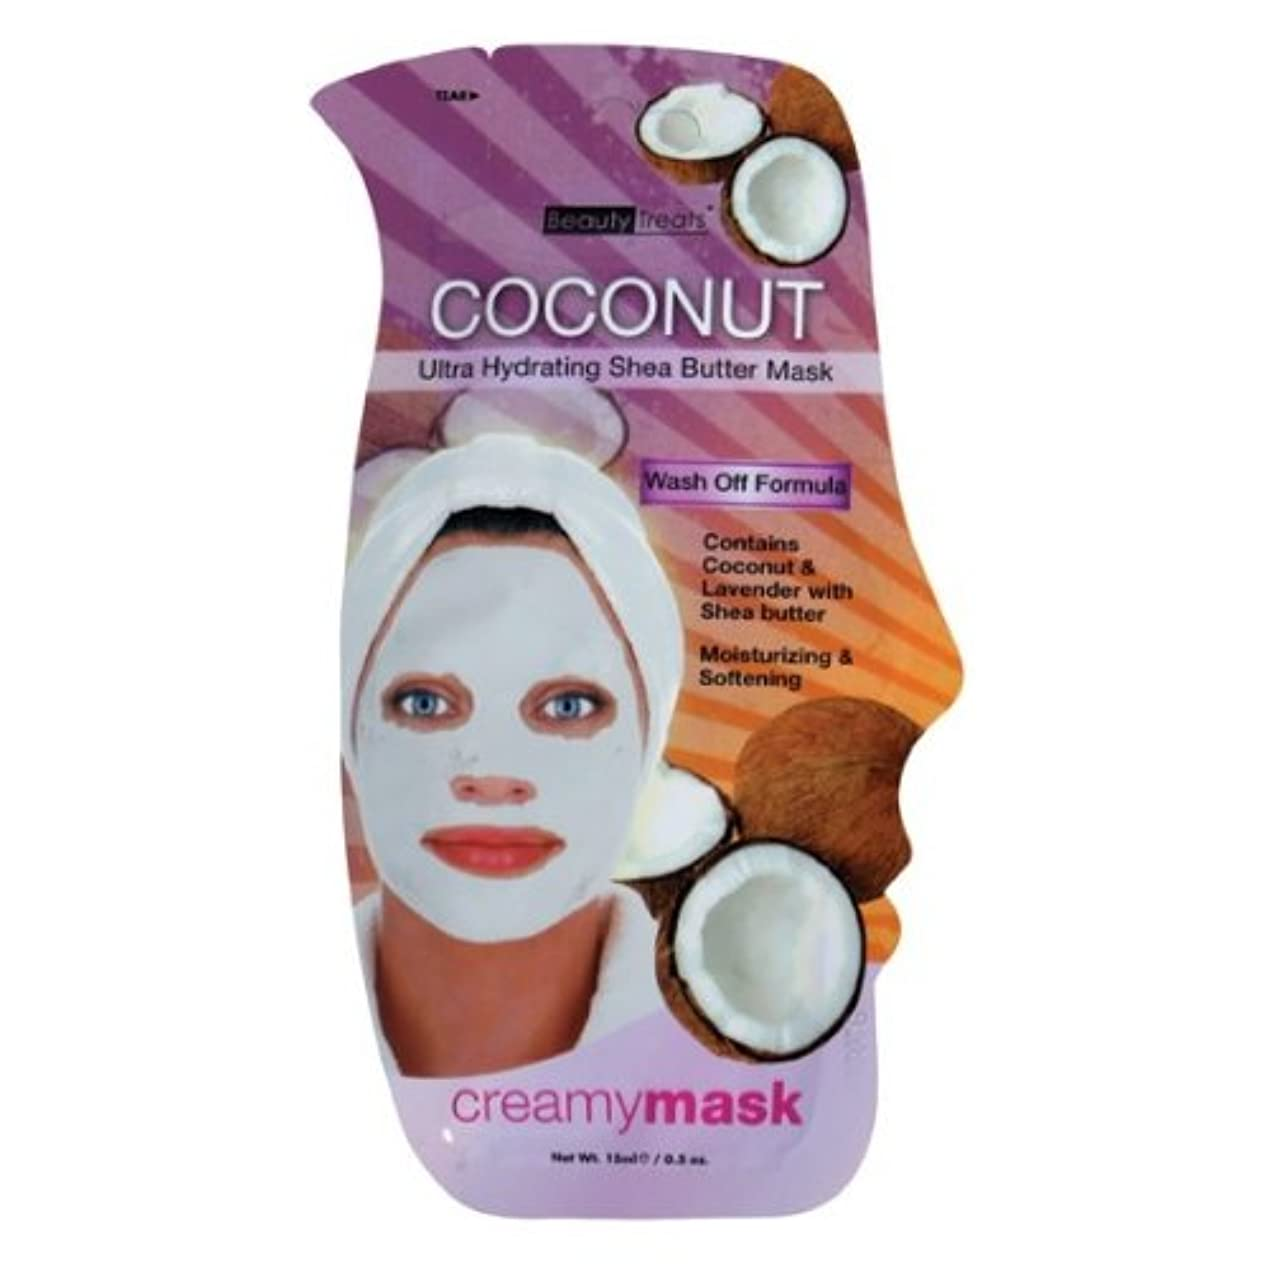 適合する前述の五BEAUTY TREATS Coconut Ultra Hydrating Shea Butter Mask - Coconut (並行輸入品)